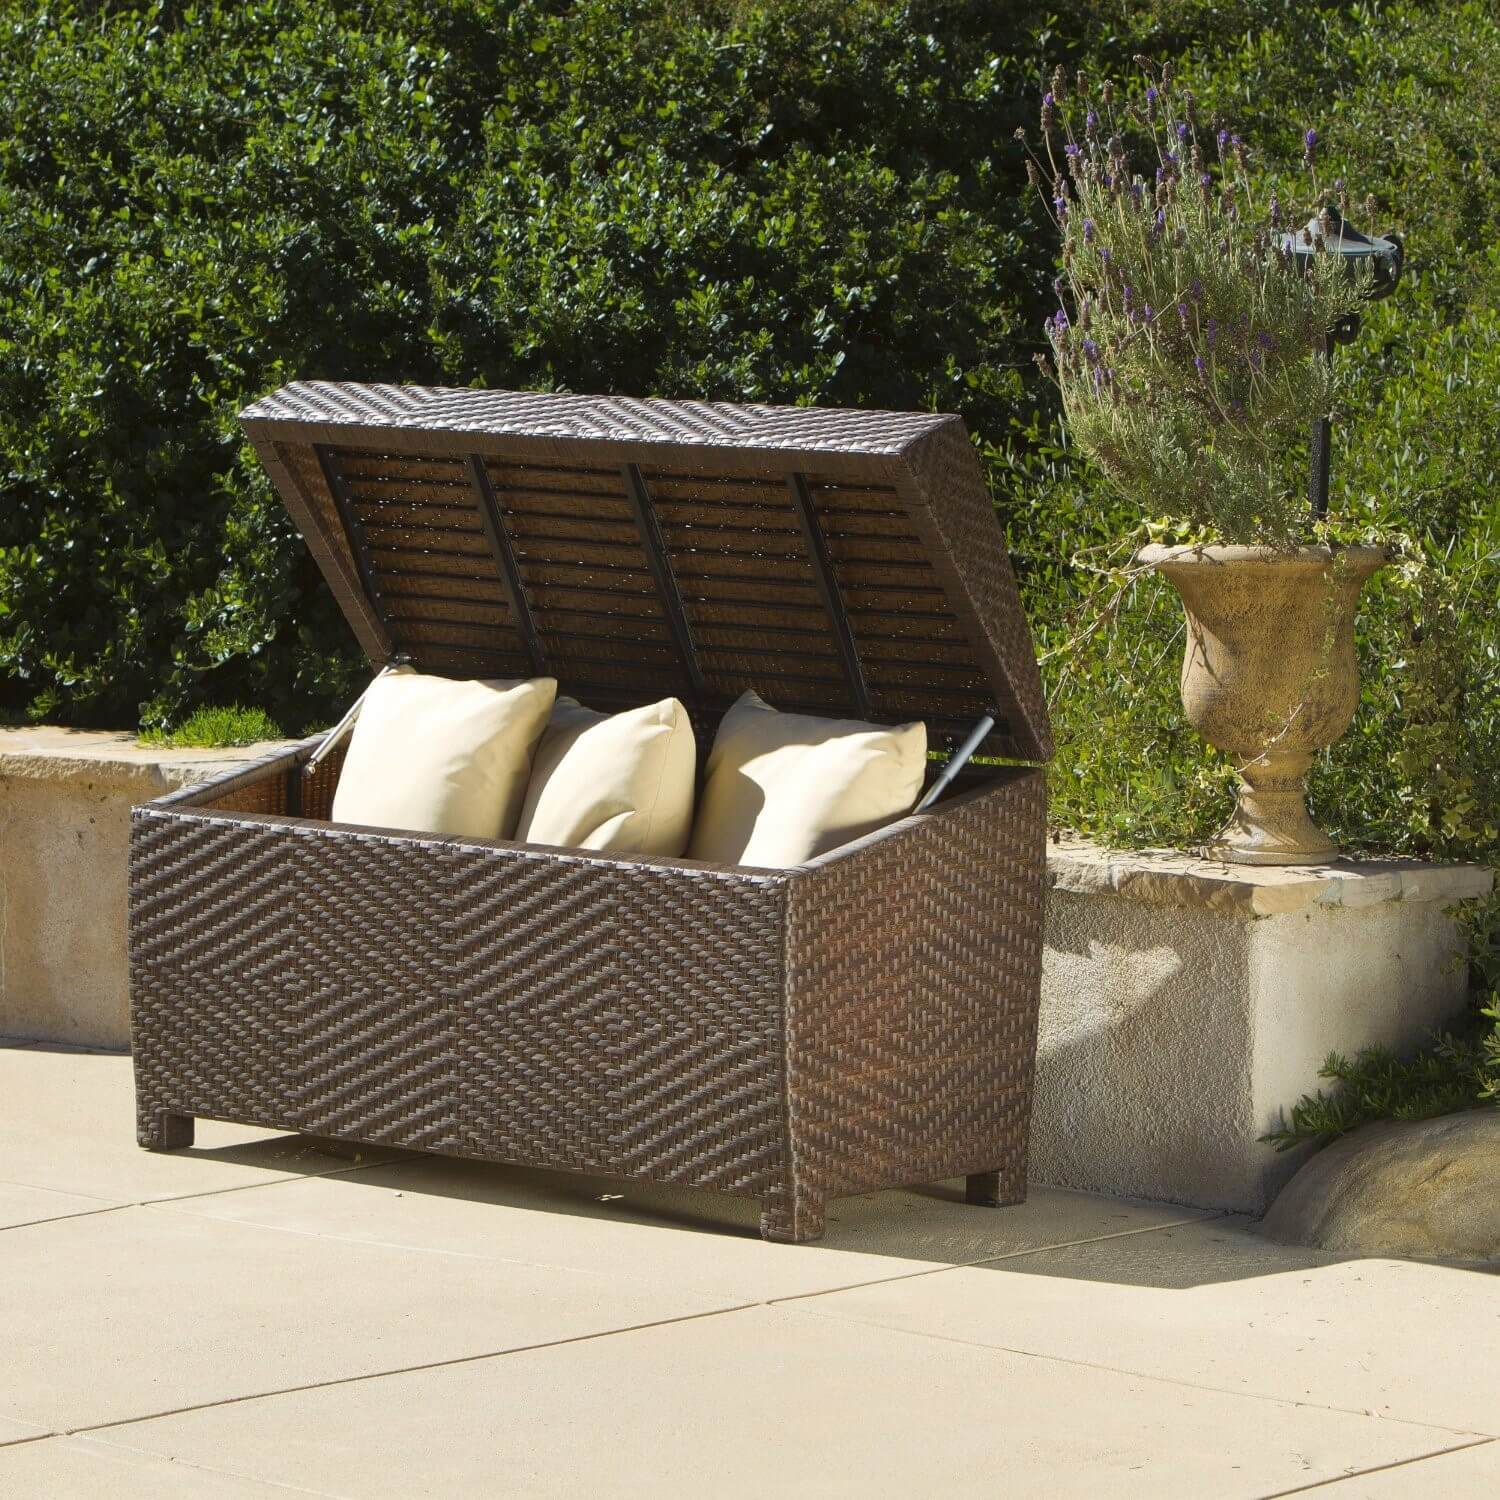 contemporary patio most pinterest on ideas for box decor pool best home storage cushion the intended bench garden